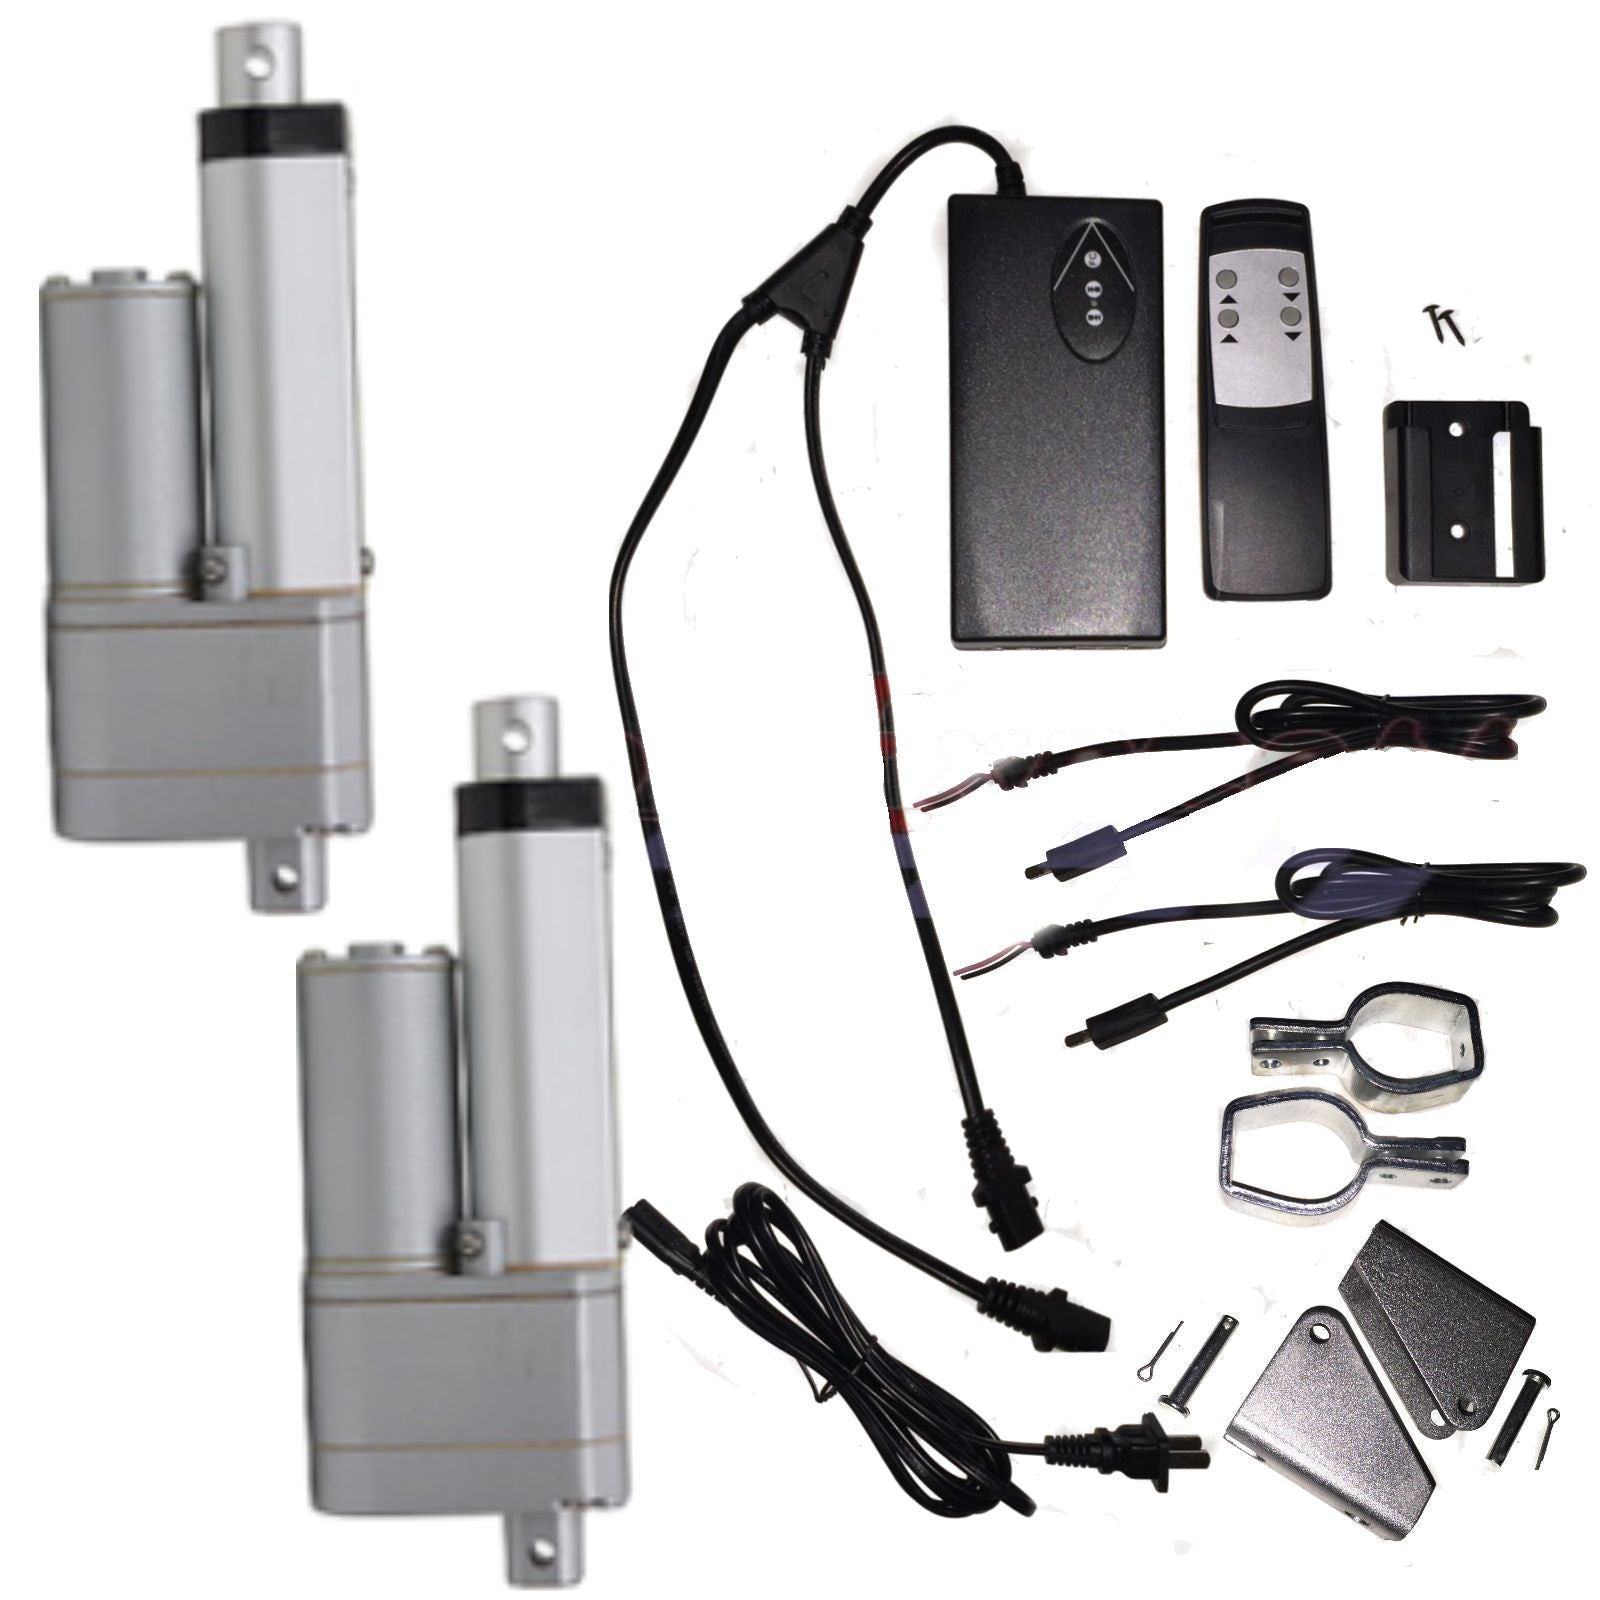 "2 Linear Actuators 6"" inch Stroke 12V 110V Power Supply With Remote Bracket Set - AE-Power"